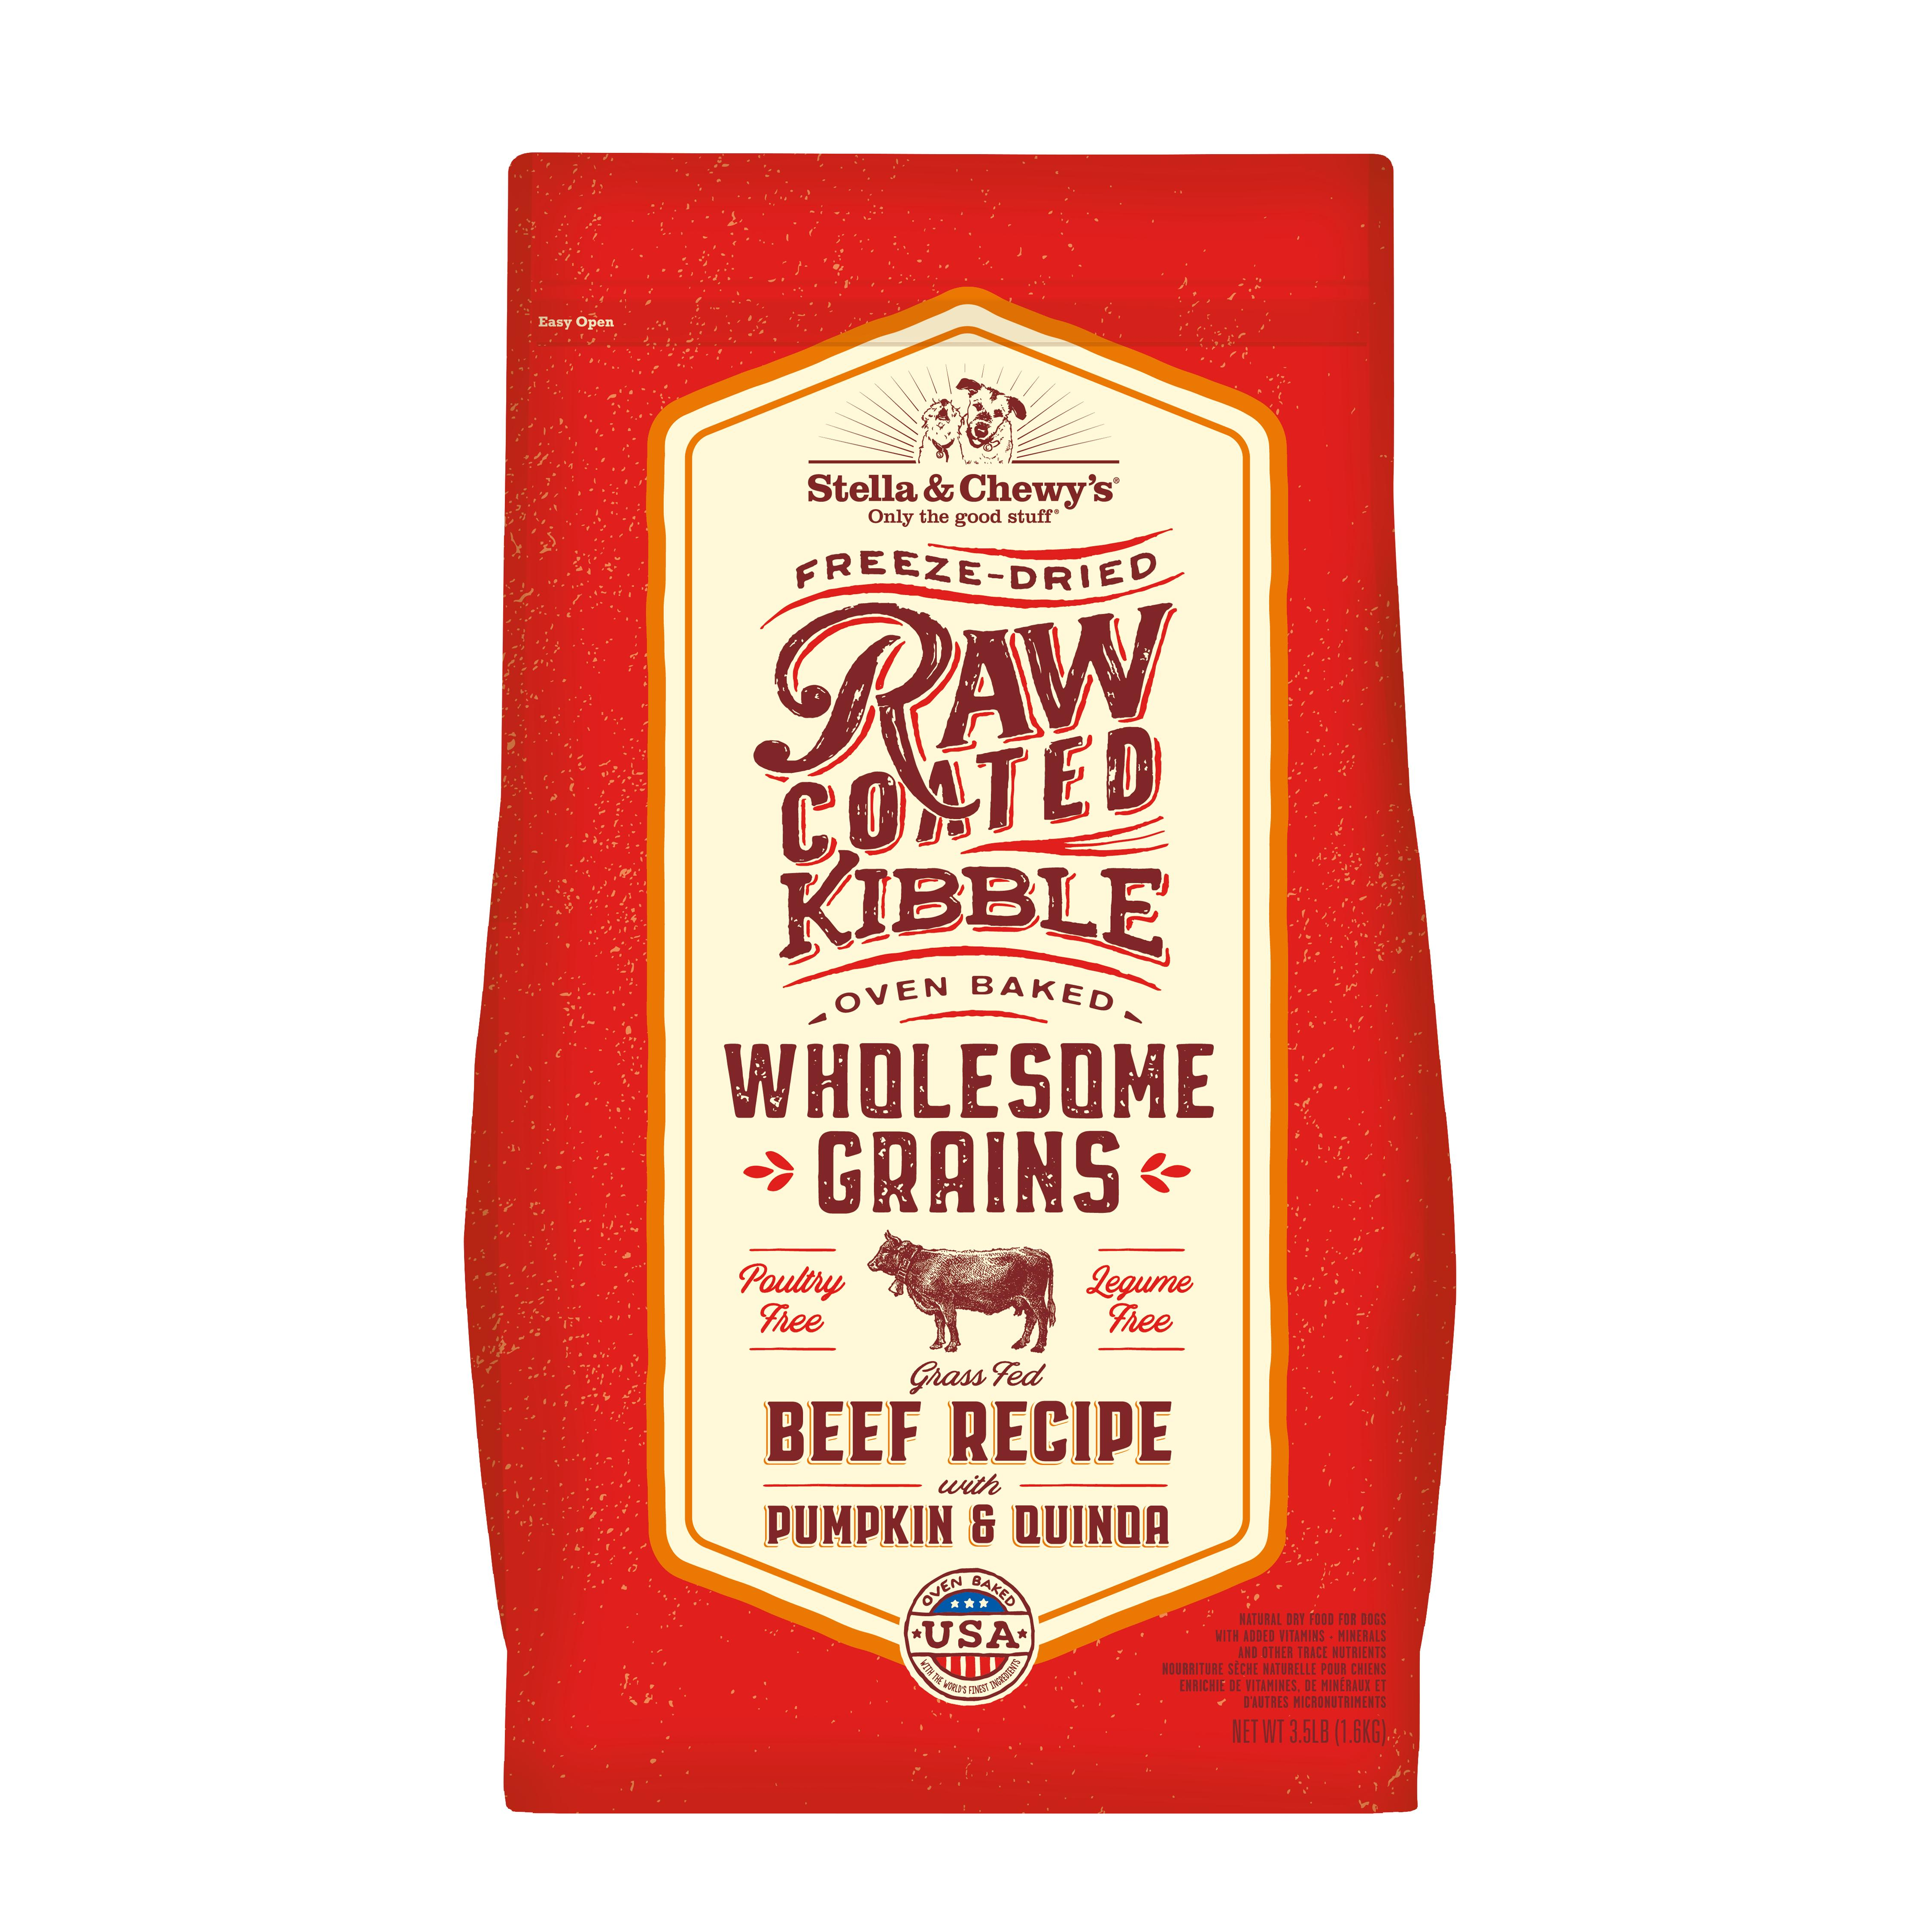 Stella & Chewy's Raw Coated Kibble Wholesome Grains Beef, Pumpkin & Quinoa Dry Dog Food, 22-lb